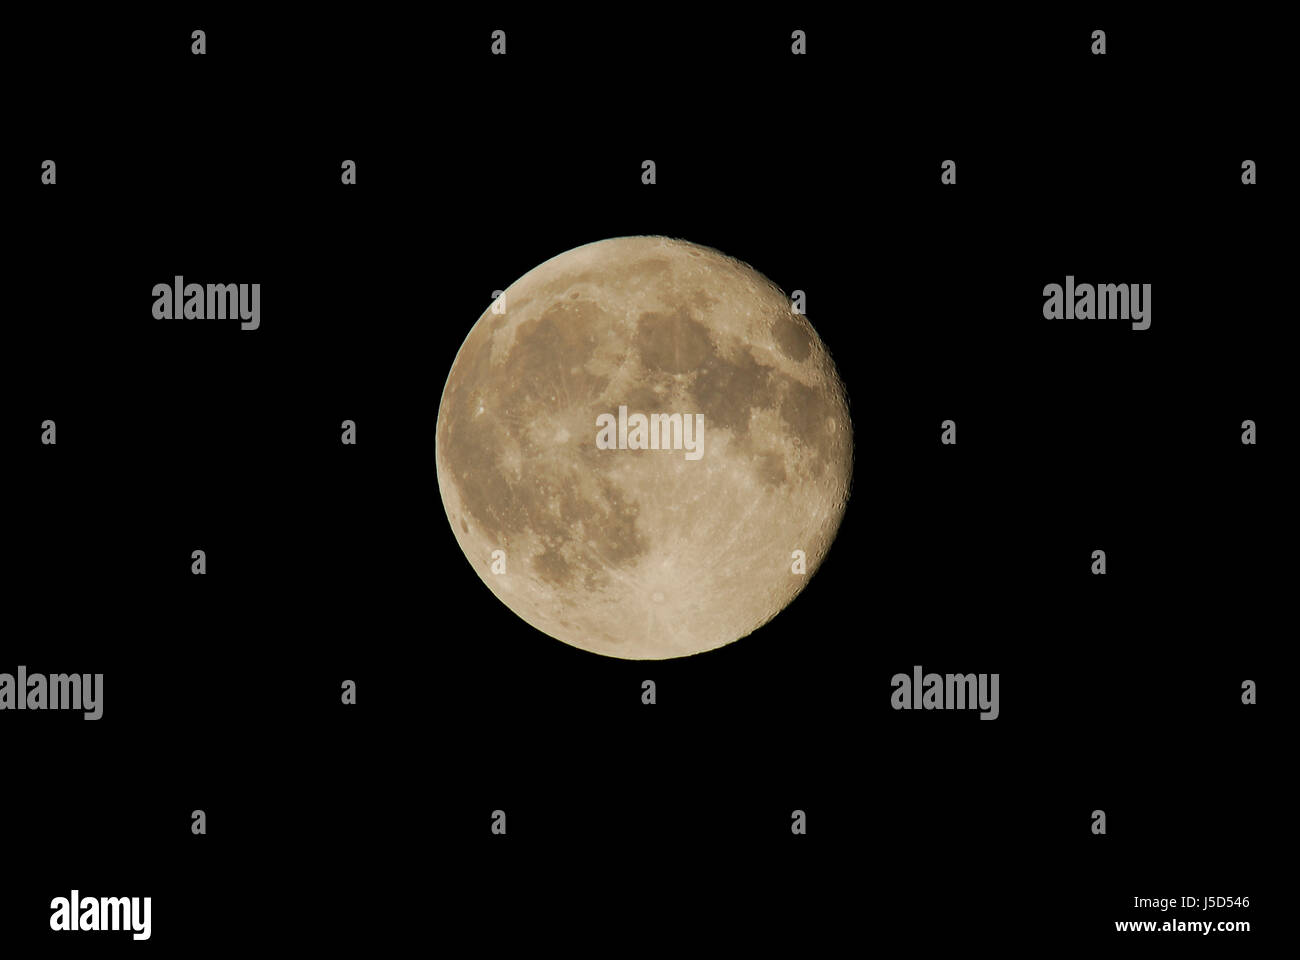 universe moon astrology full moon waning fascination decrease Stock